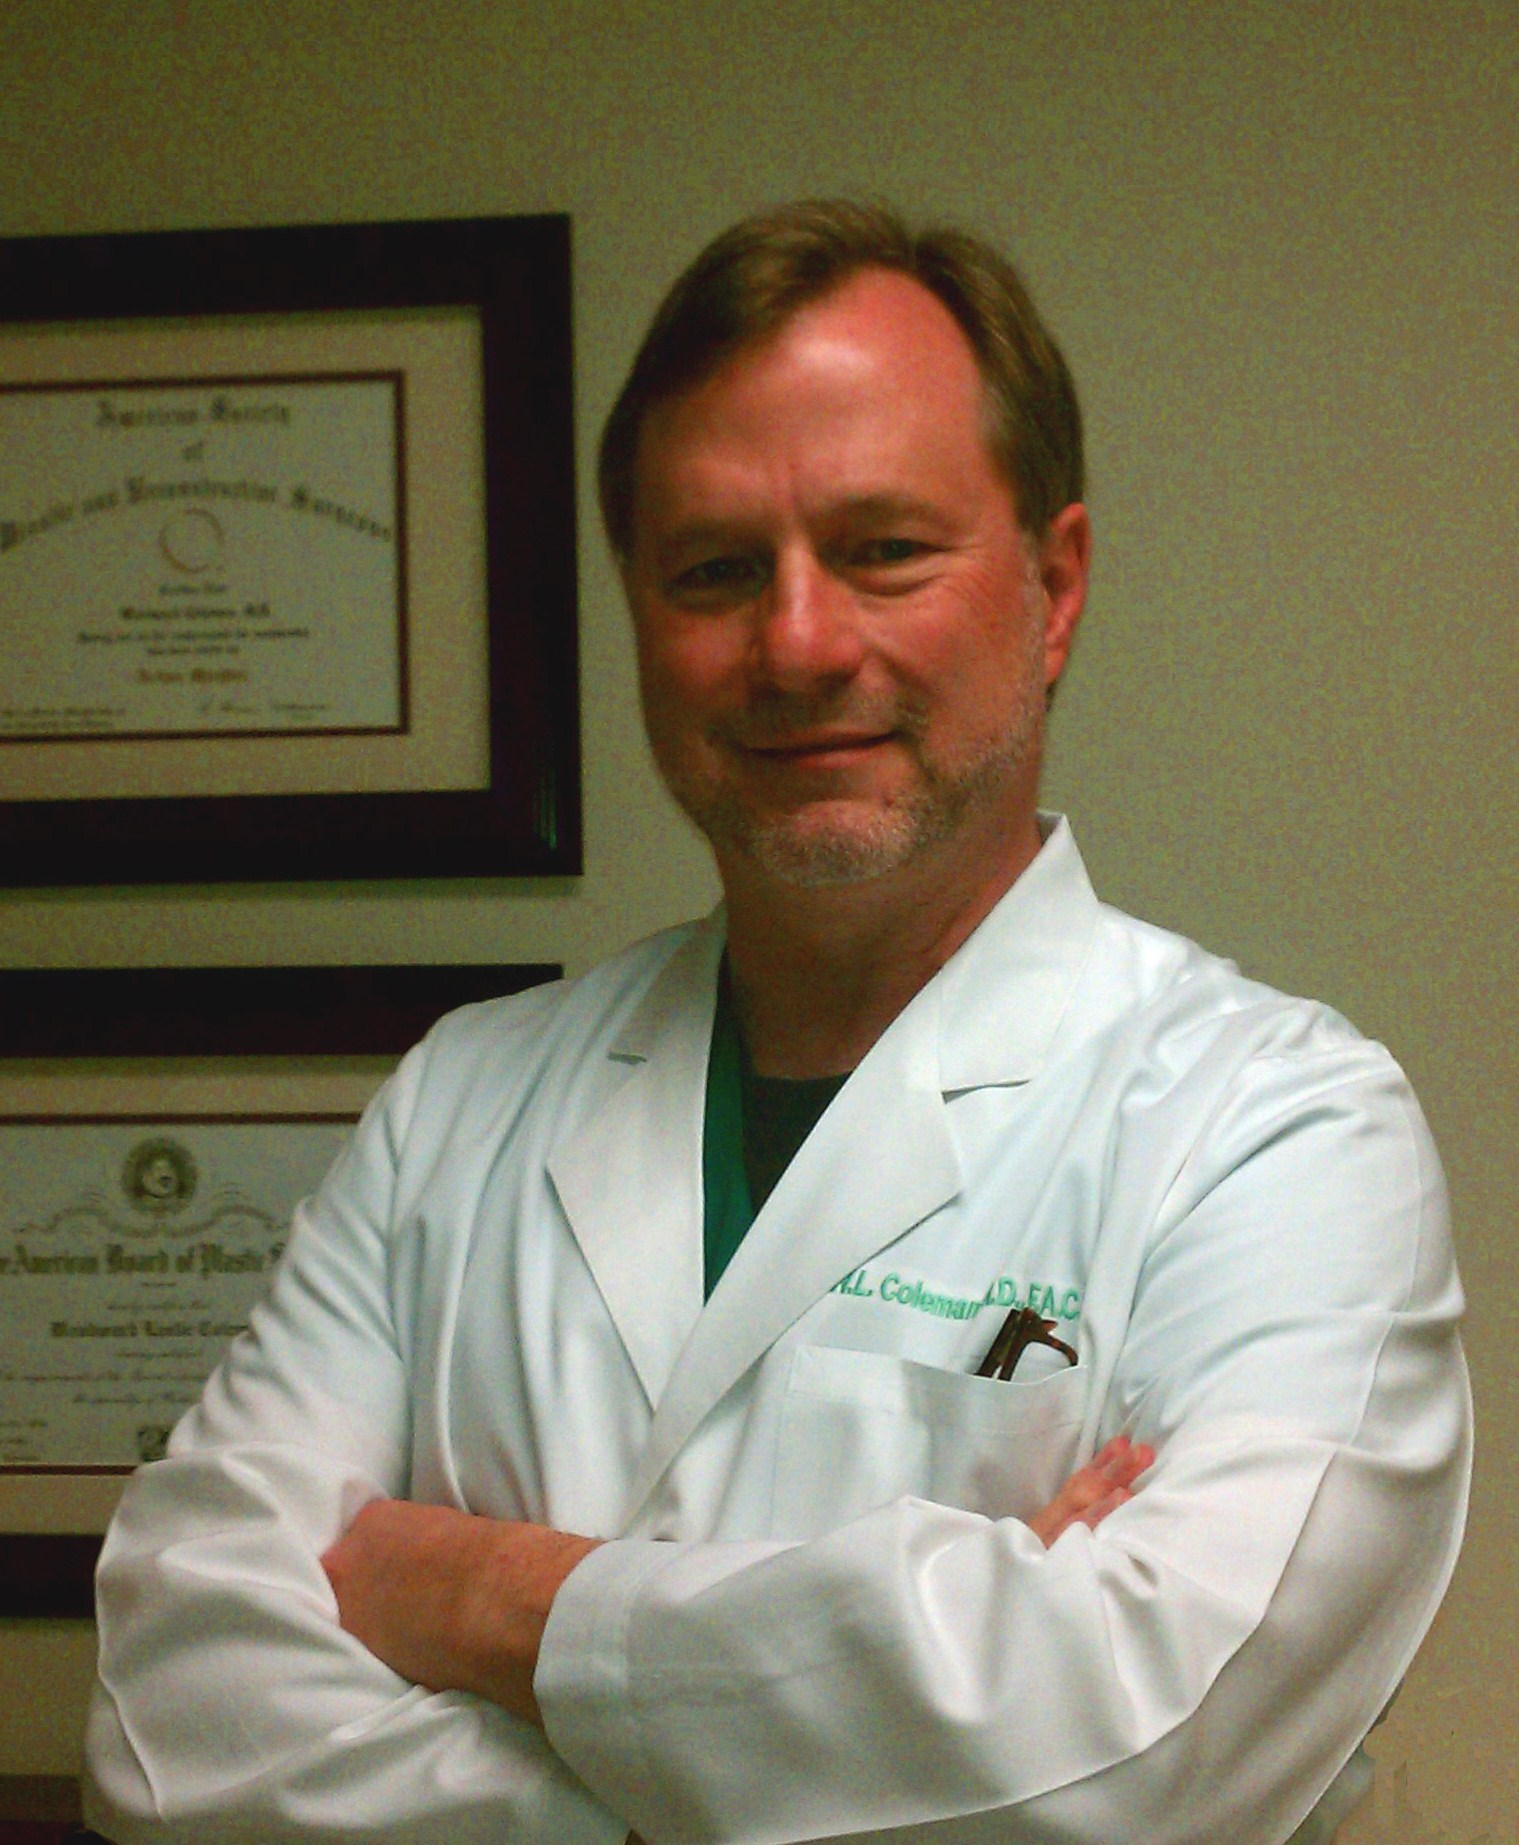 Dr. Woodward L. Coleman / Woodie Coleman's San Antonio TX office serves the areas of Austin TX, San Marcos TX and Kerrville TX. Dr. Coleman specializes in cosmtic surgery with a subspecialty in hand surgery.